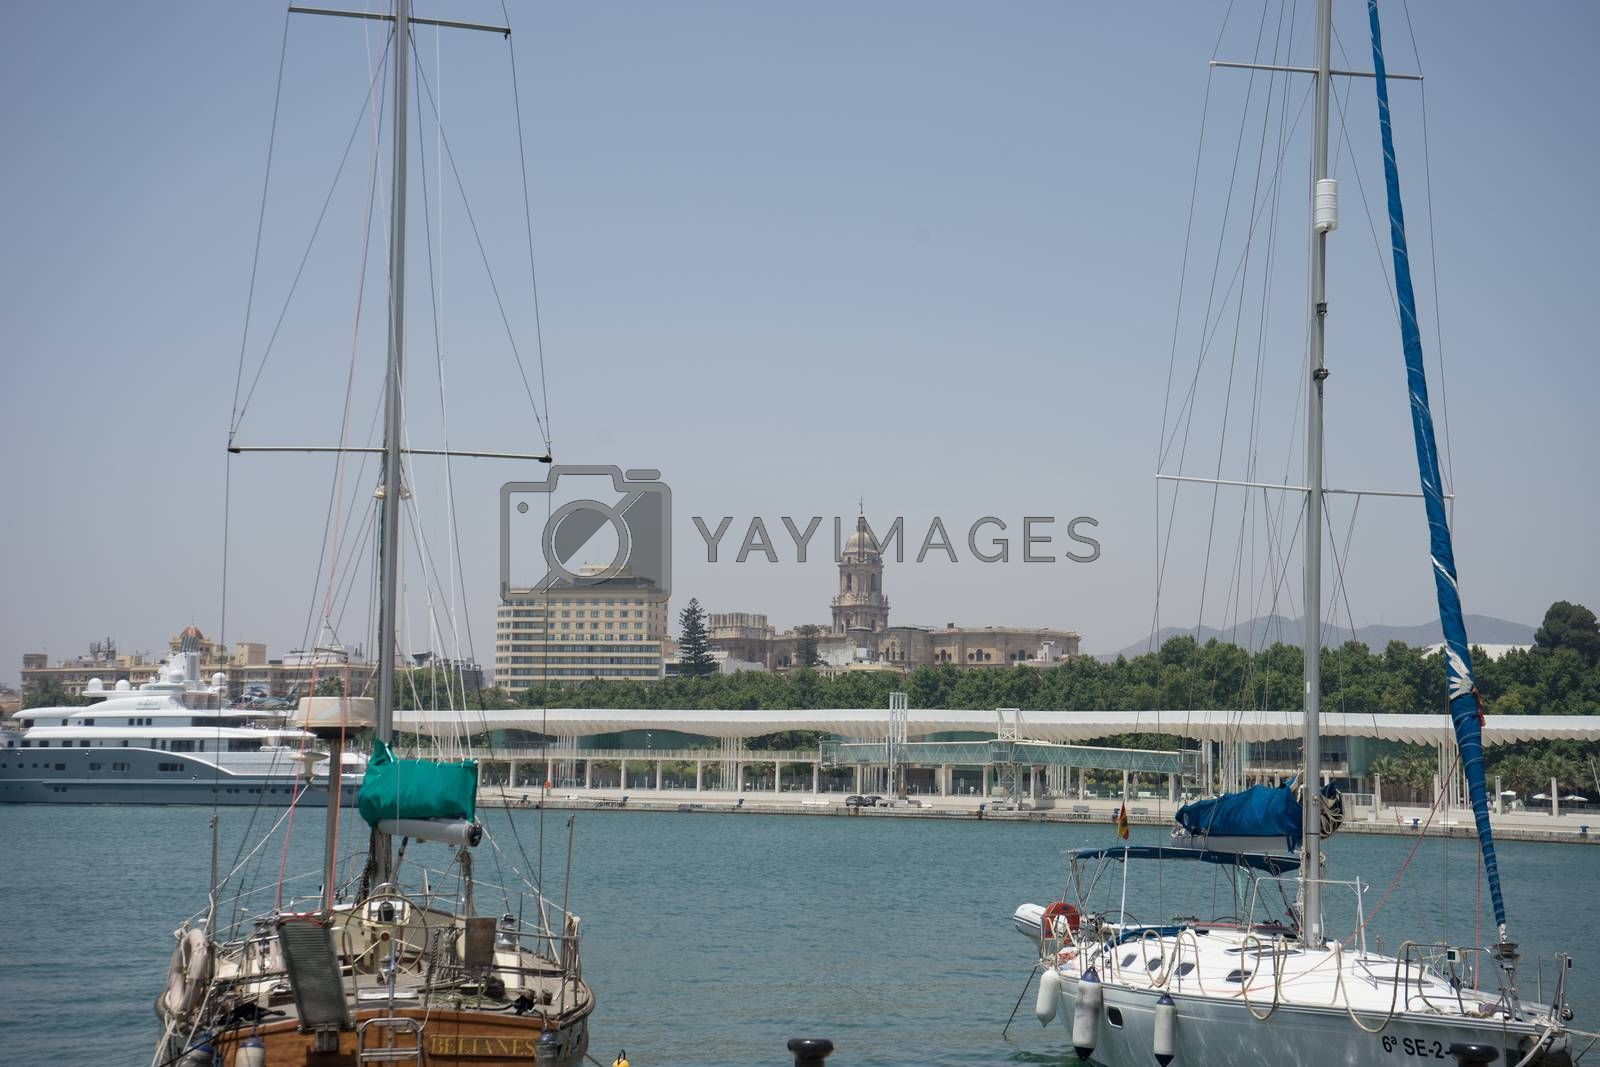 Boats with their sails down docking at the harbour in Malaga, Spain, Europe on a summer day with clear skies